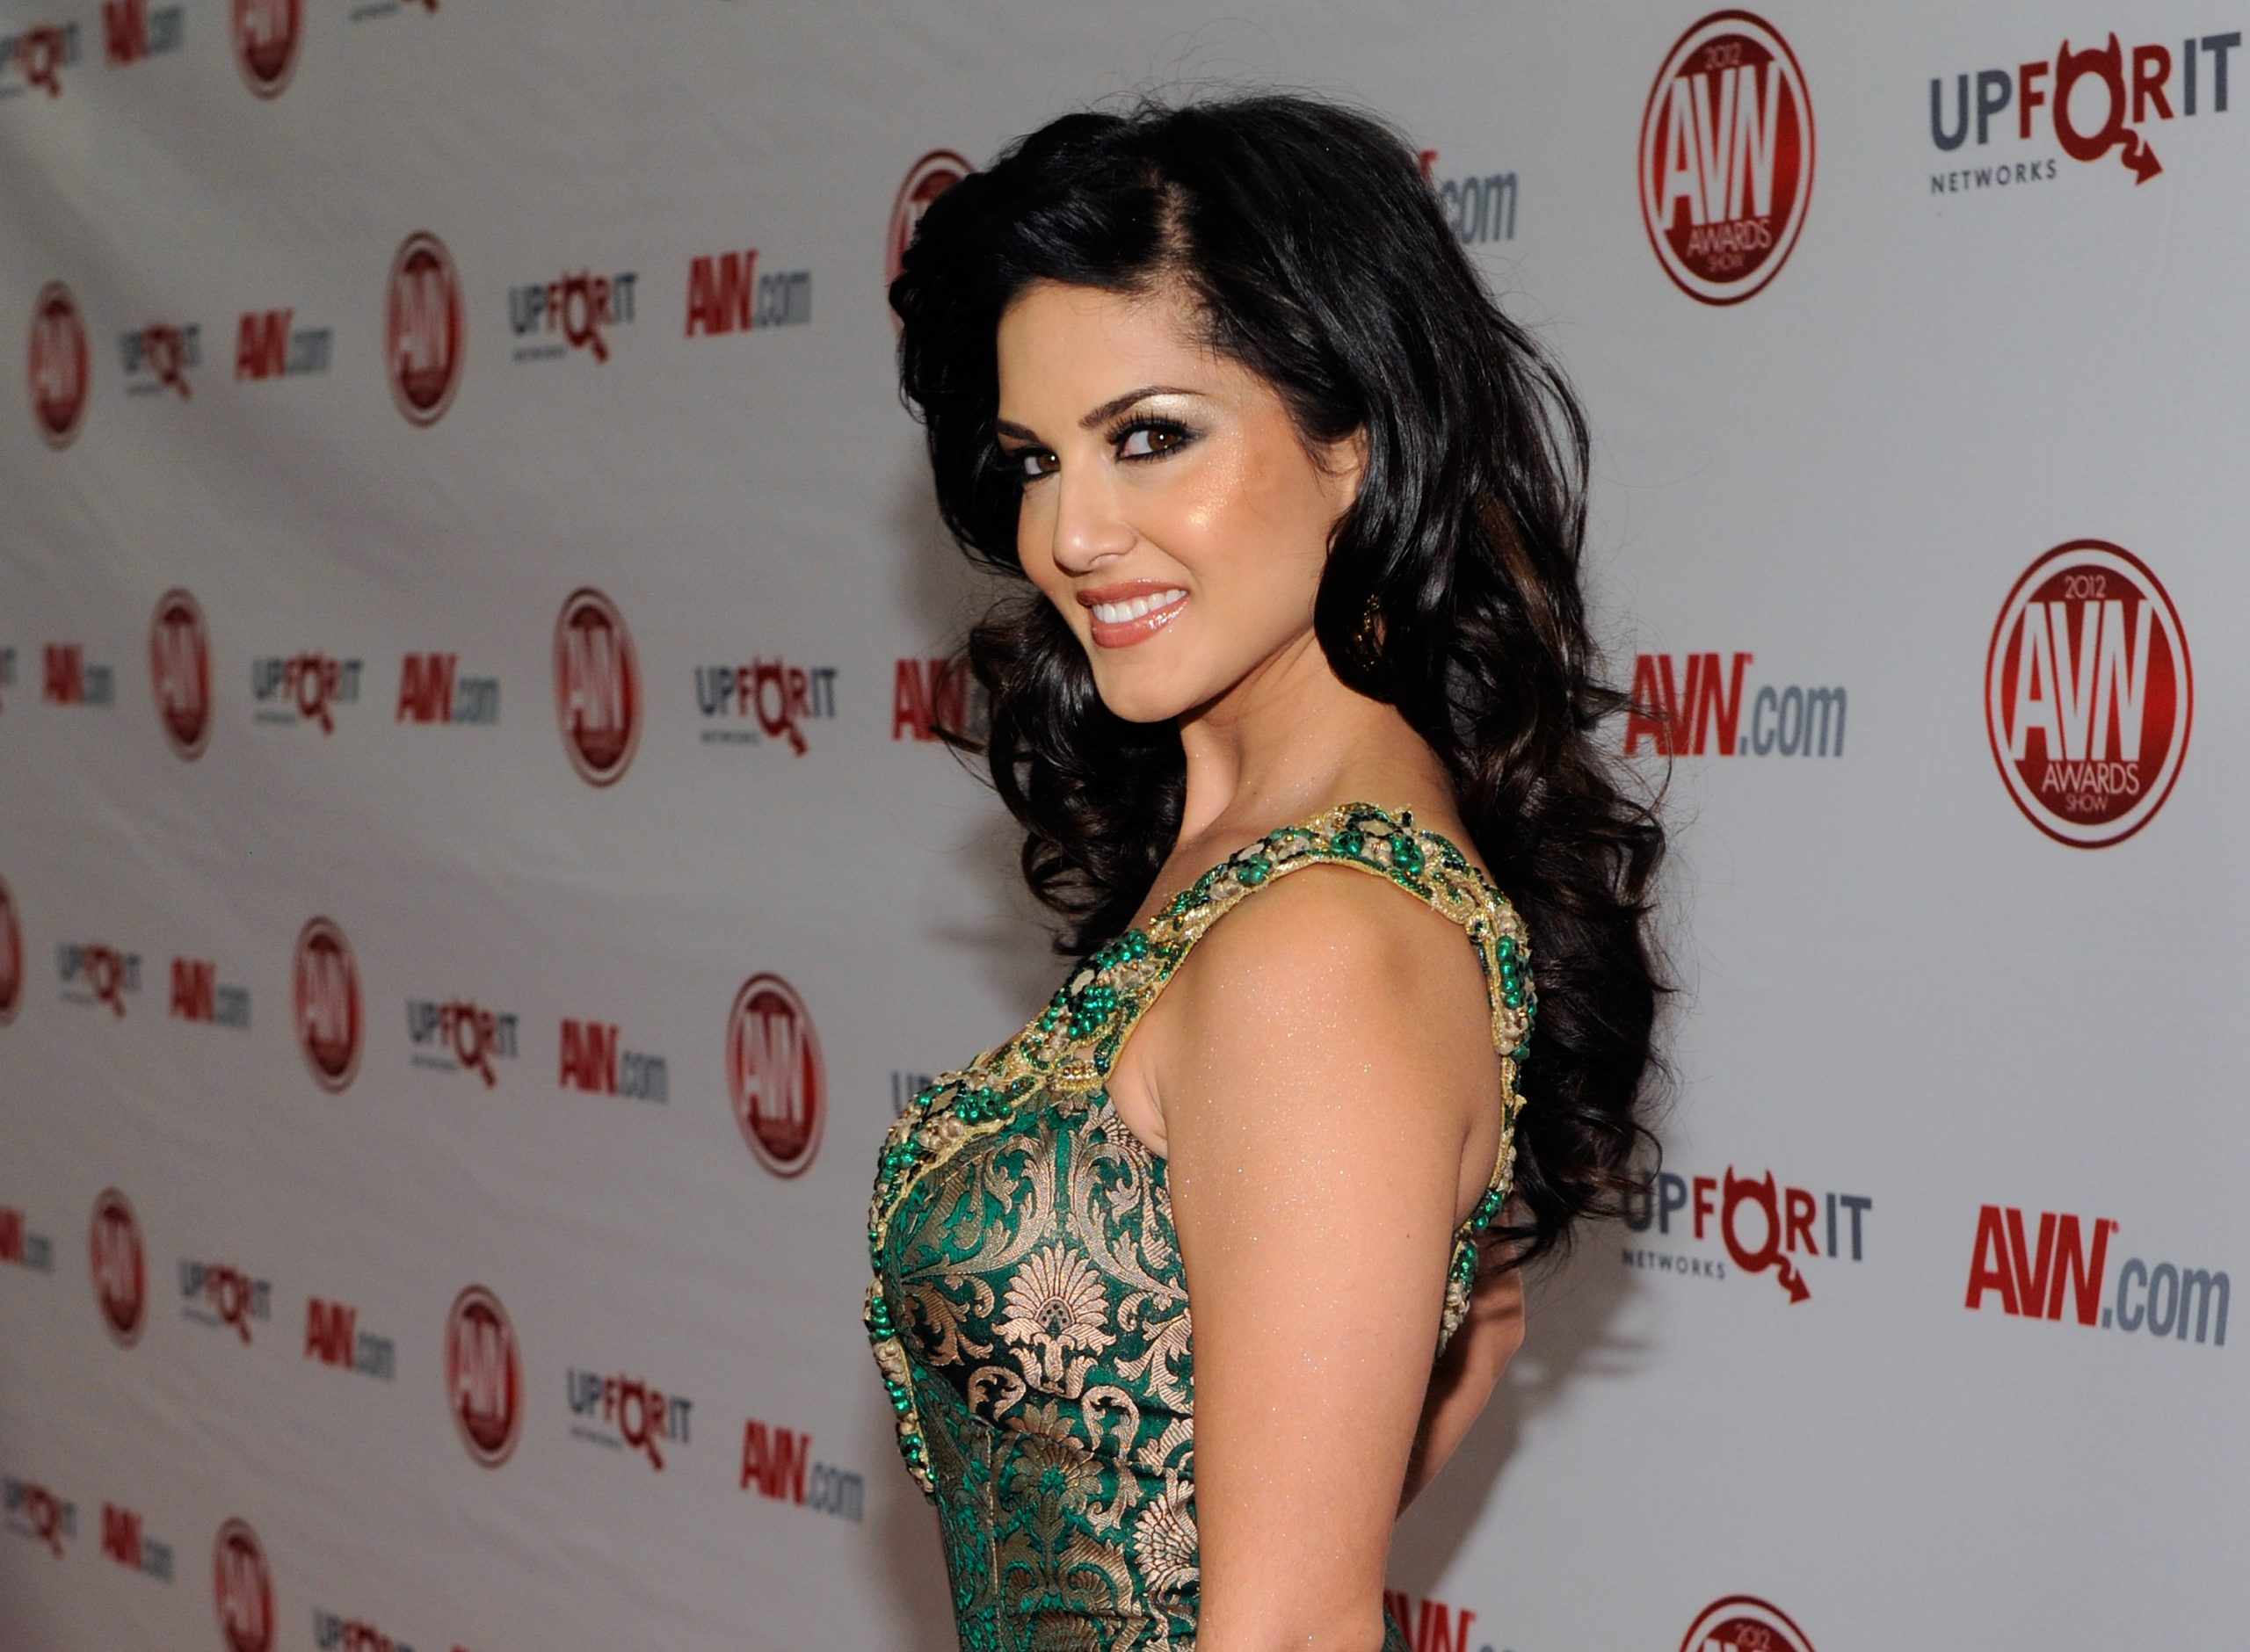 Sunny Leone (Photo by Ethan Miller/Getty Images)